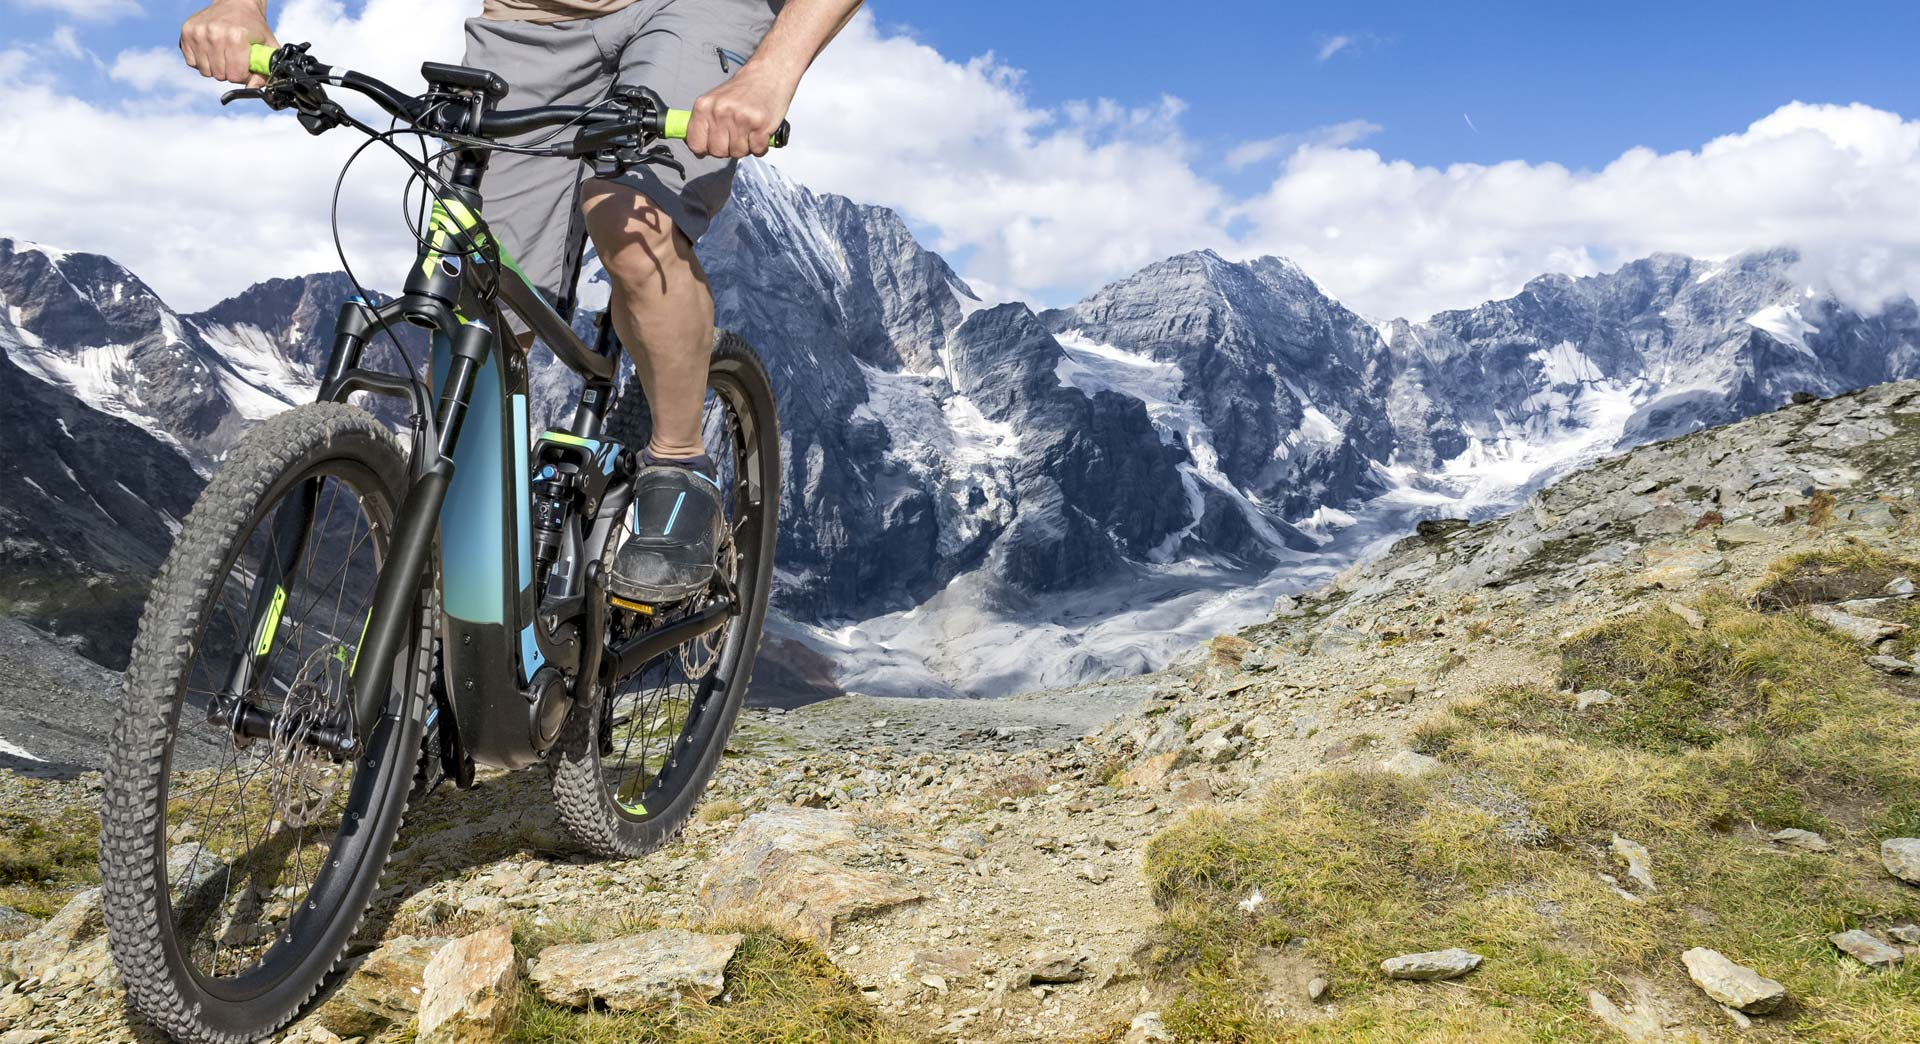 Cyclist on the mountains of the Tonale pass